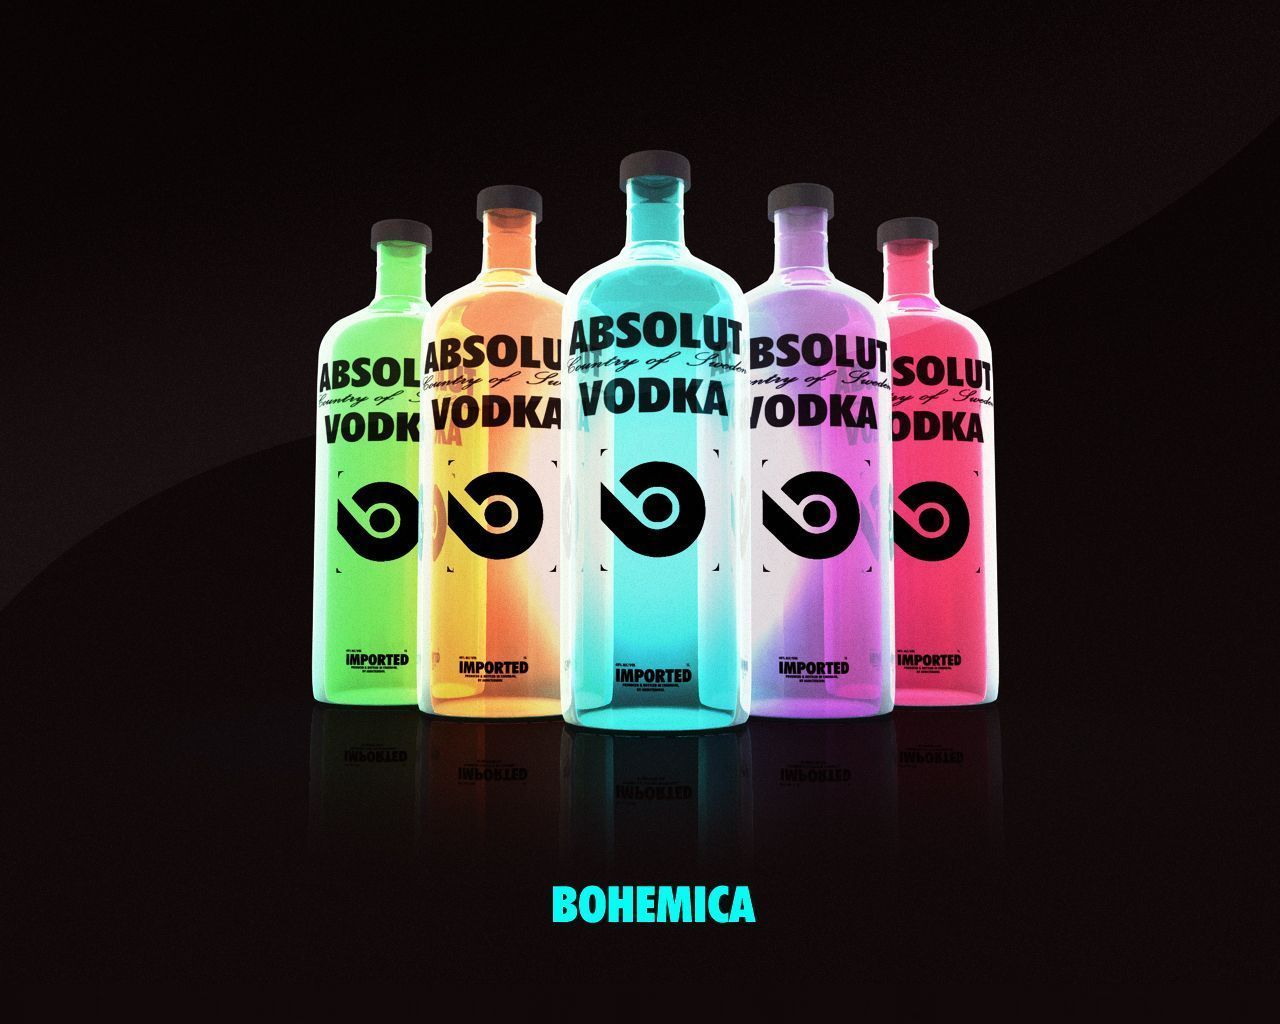 Wallpaper iphone vodka - Absolut Vodka Hd Wallpaper Wallpaper